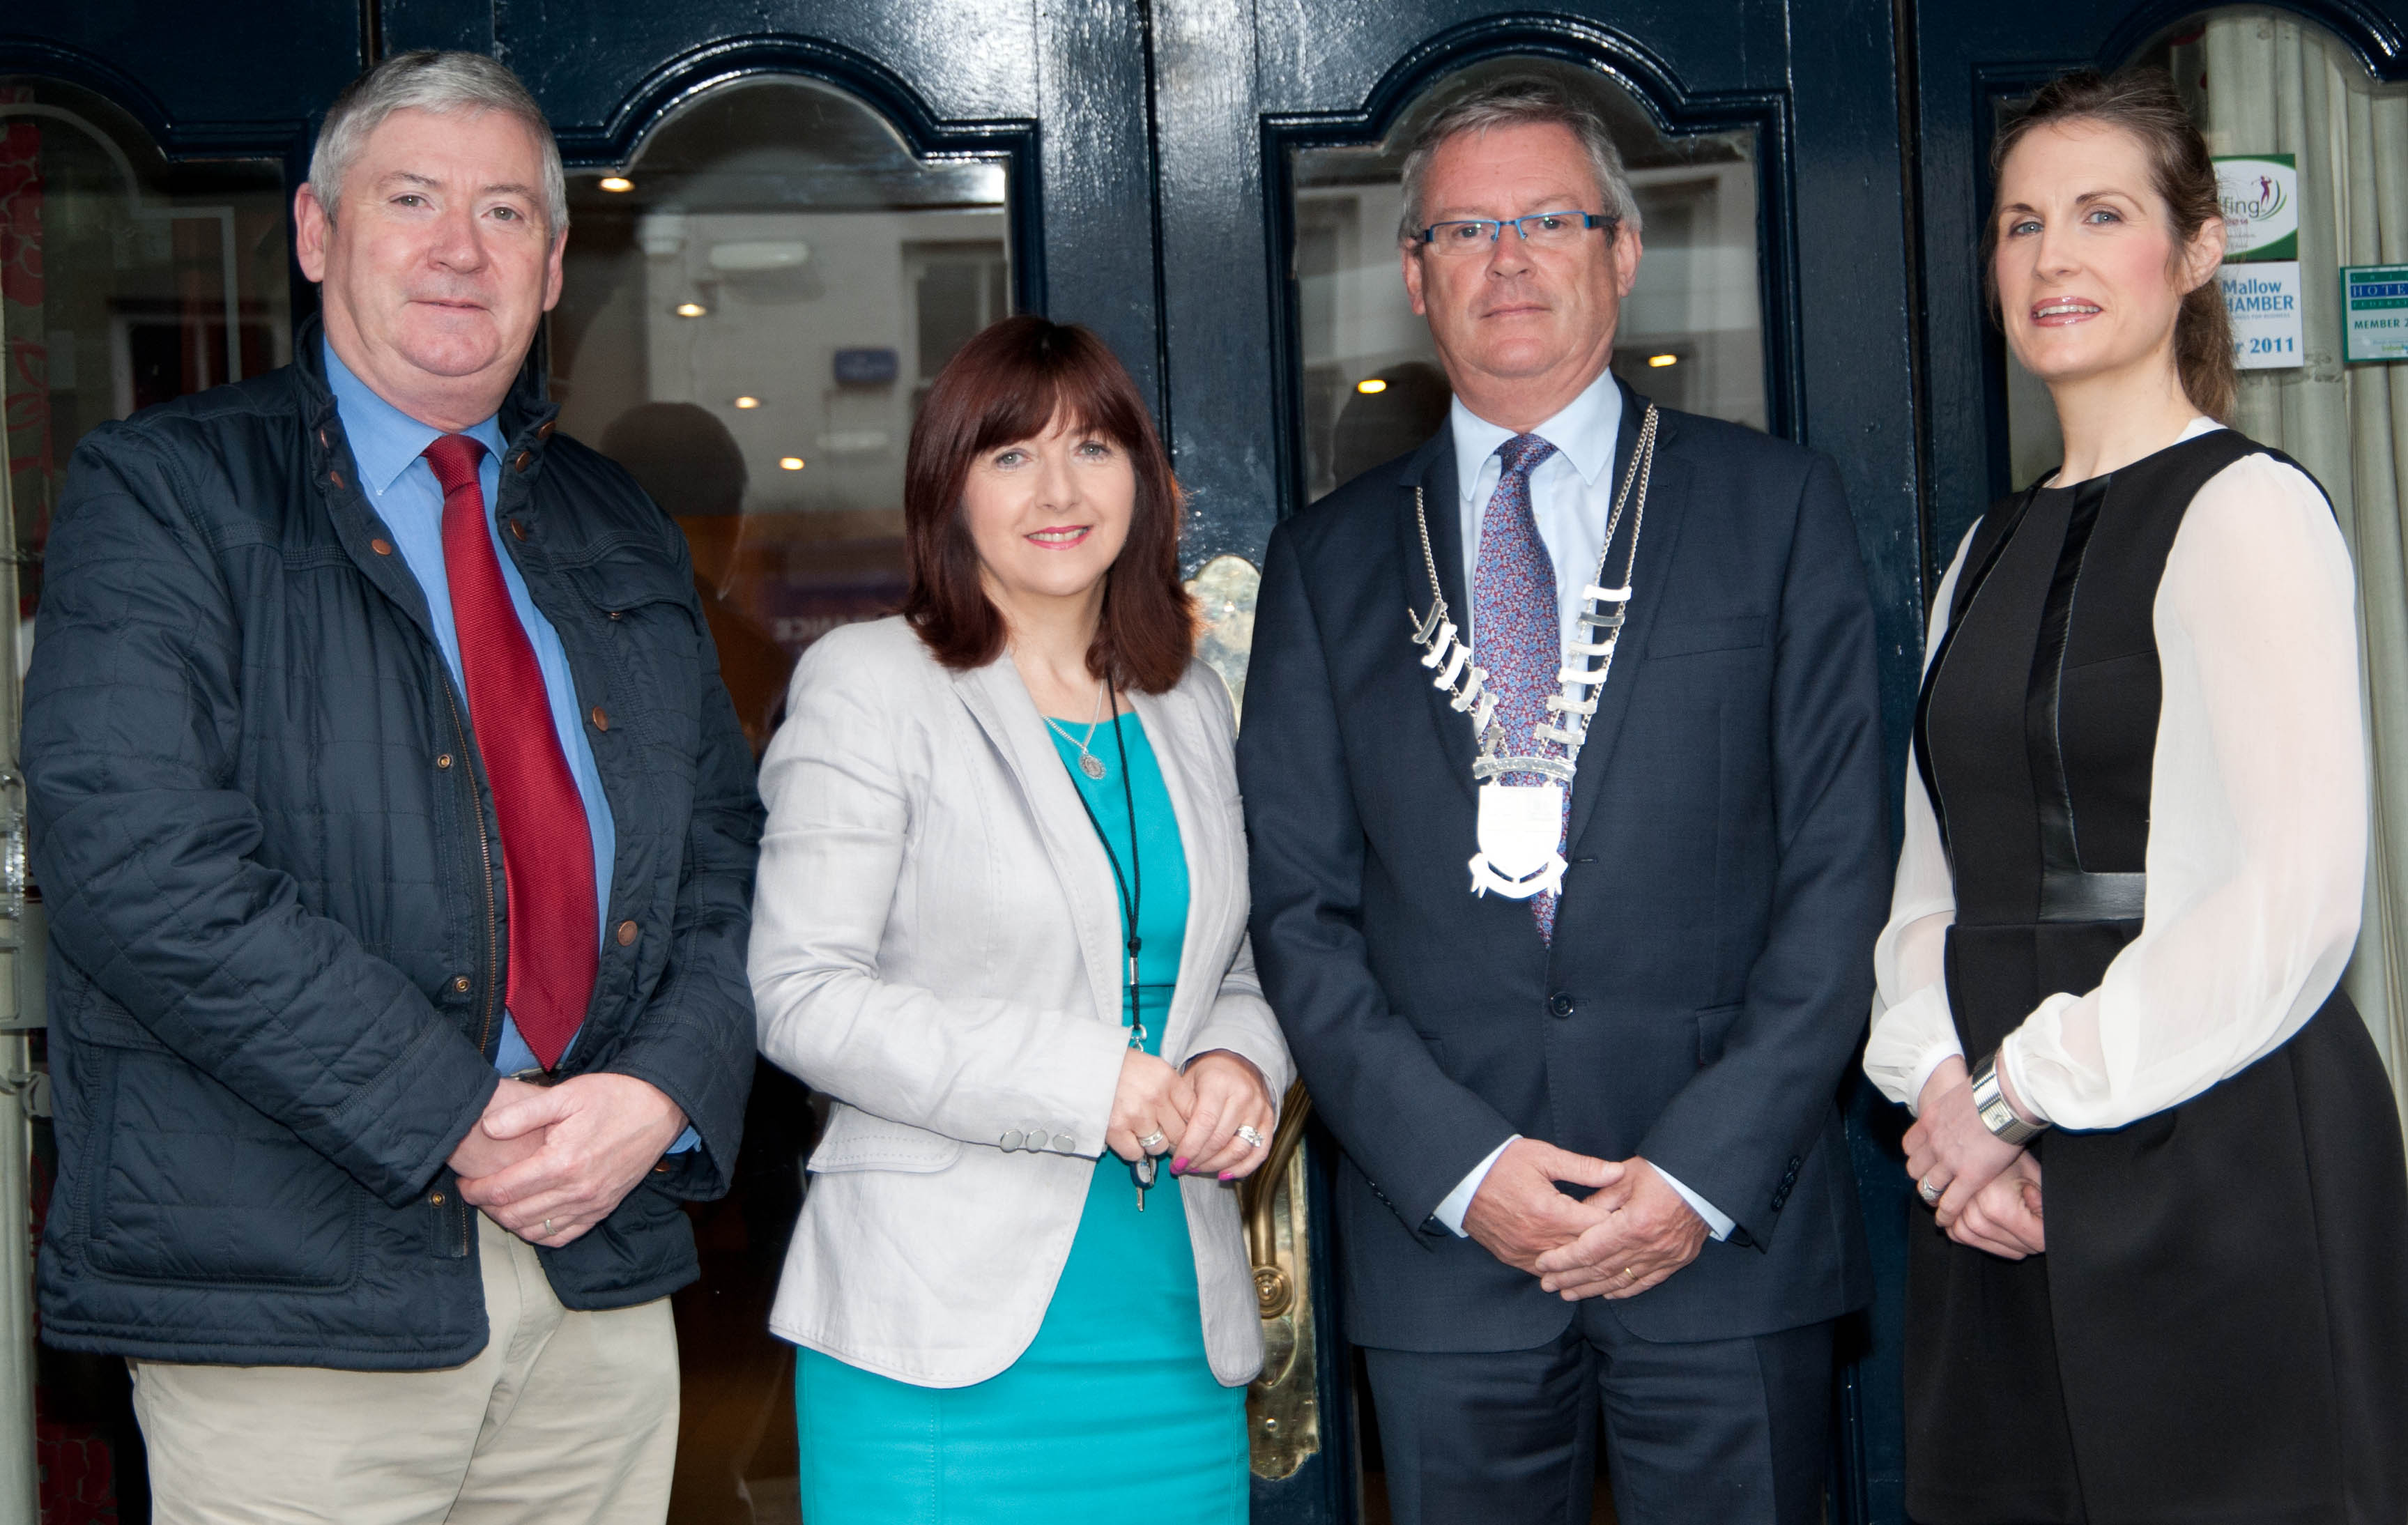 North Cork Business Breakfast